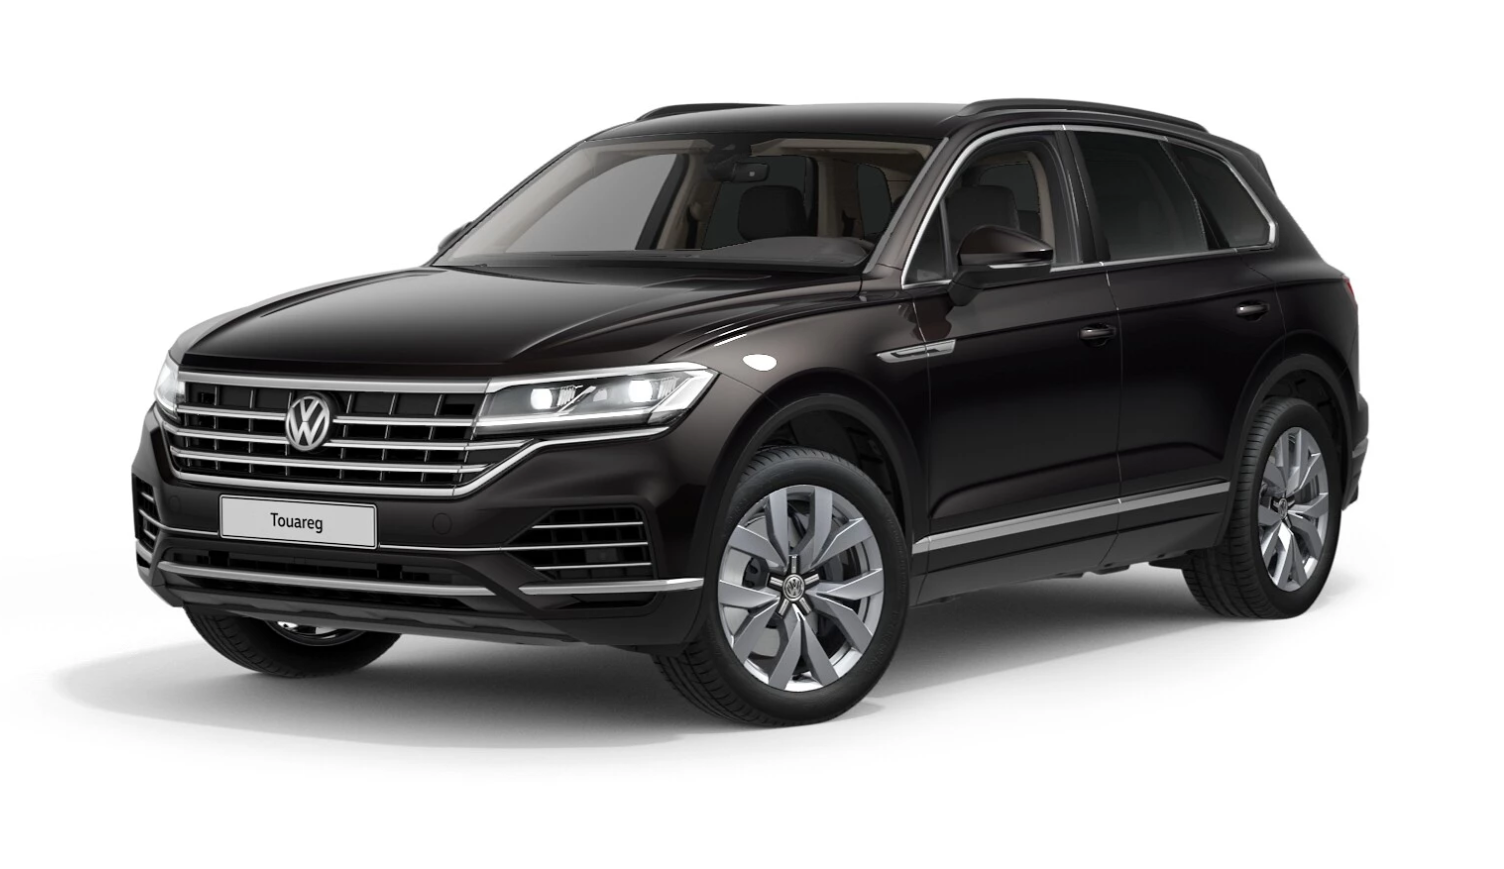 TOUAREG SO 3.0TDI V6 230ZS DSG